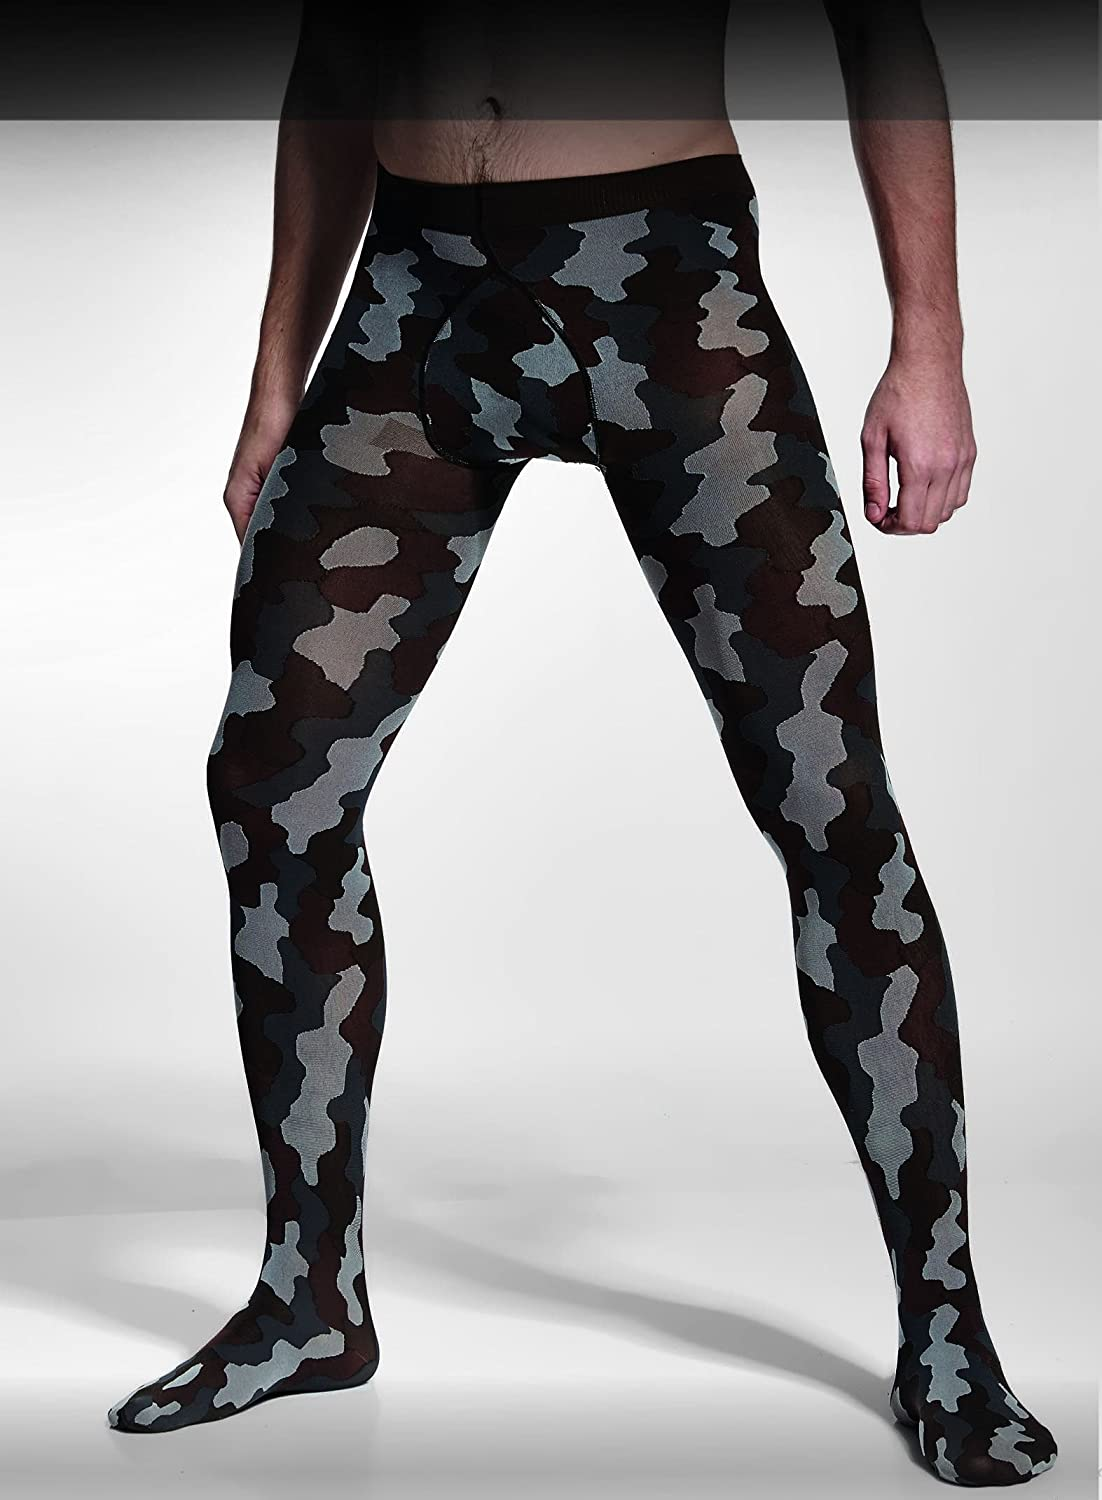 Adrian - Collant homme camouflage